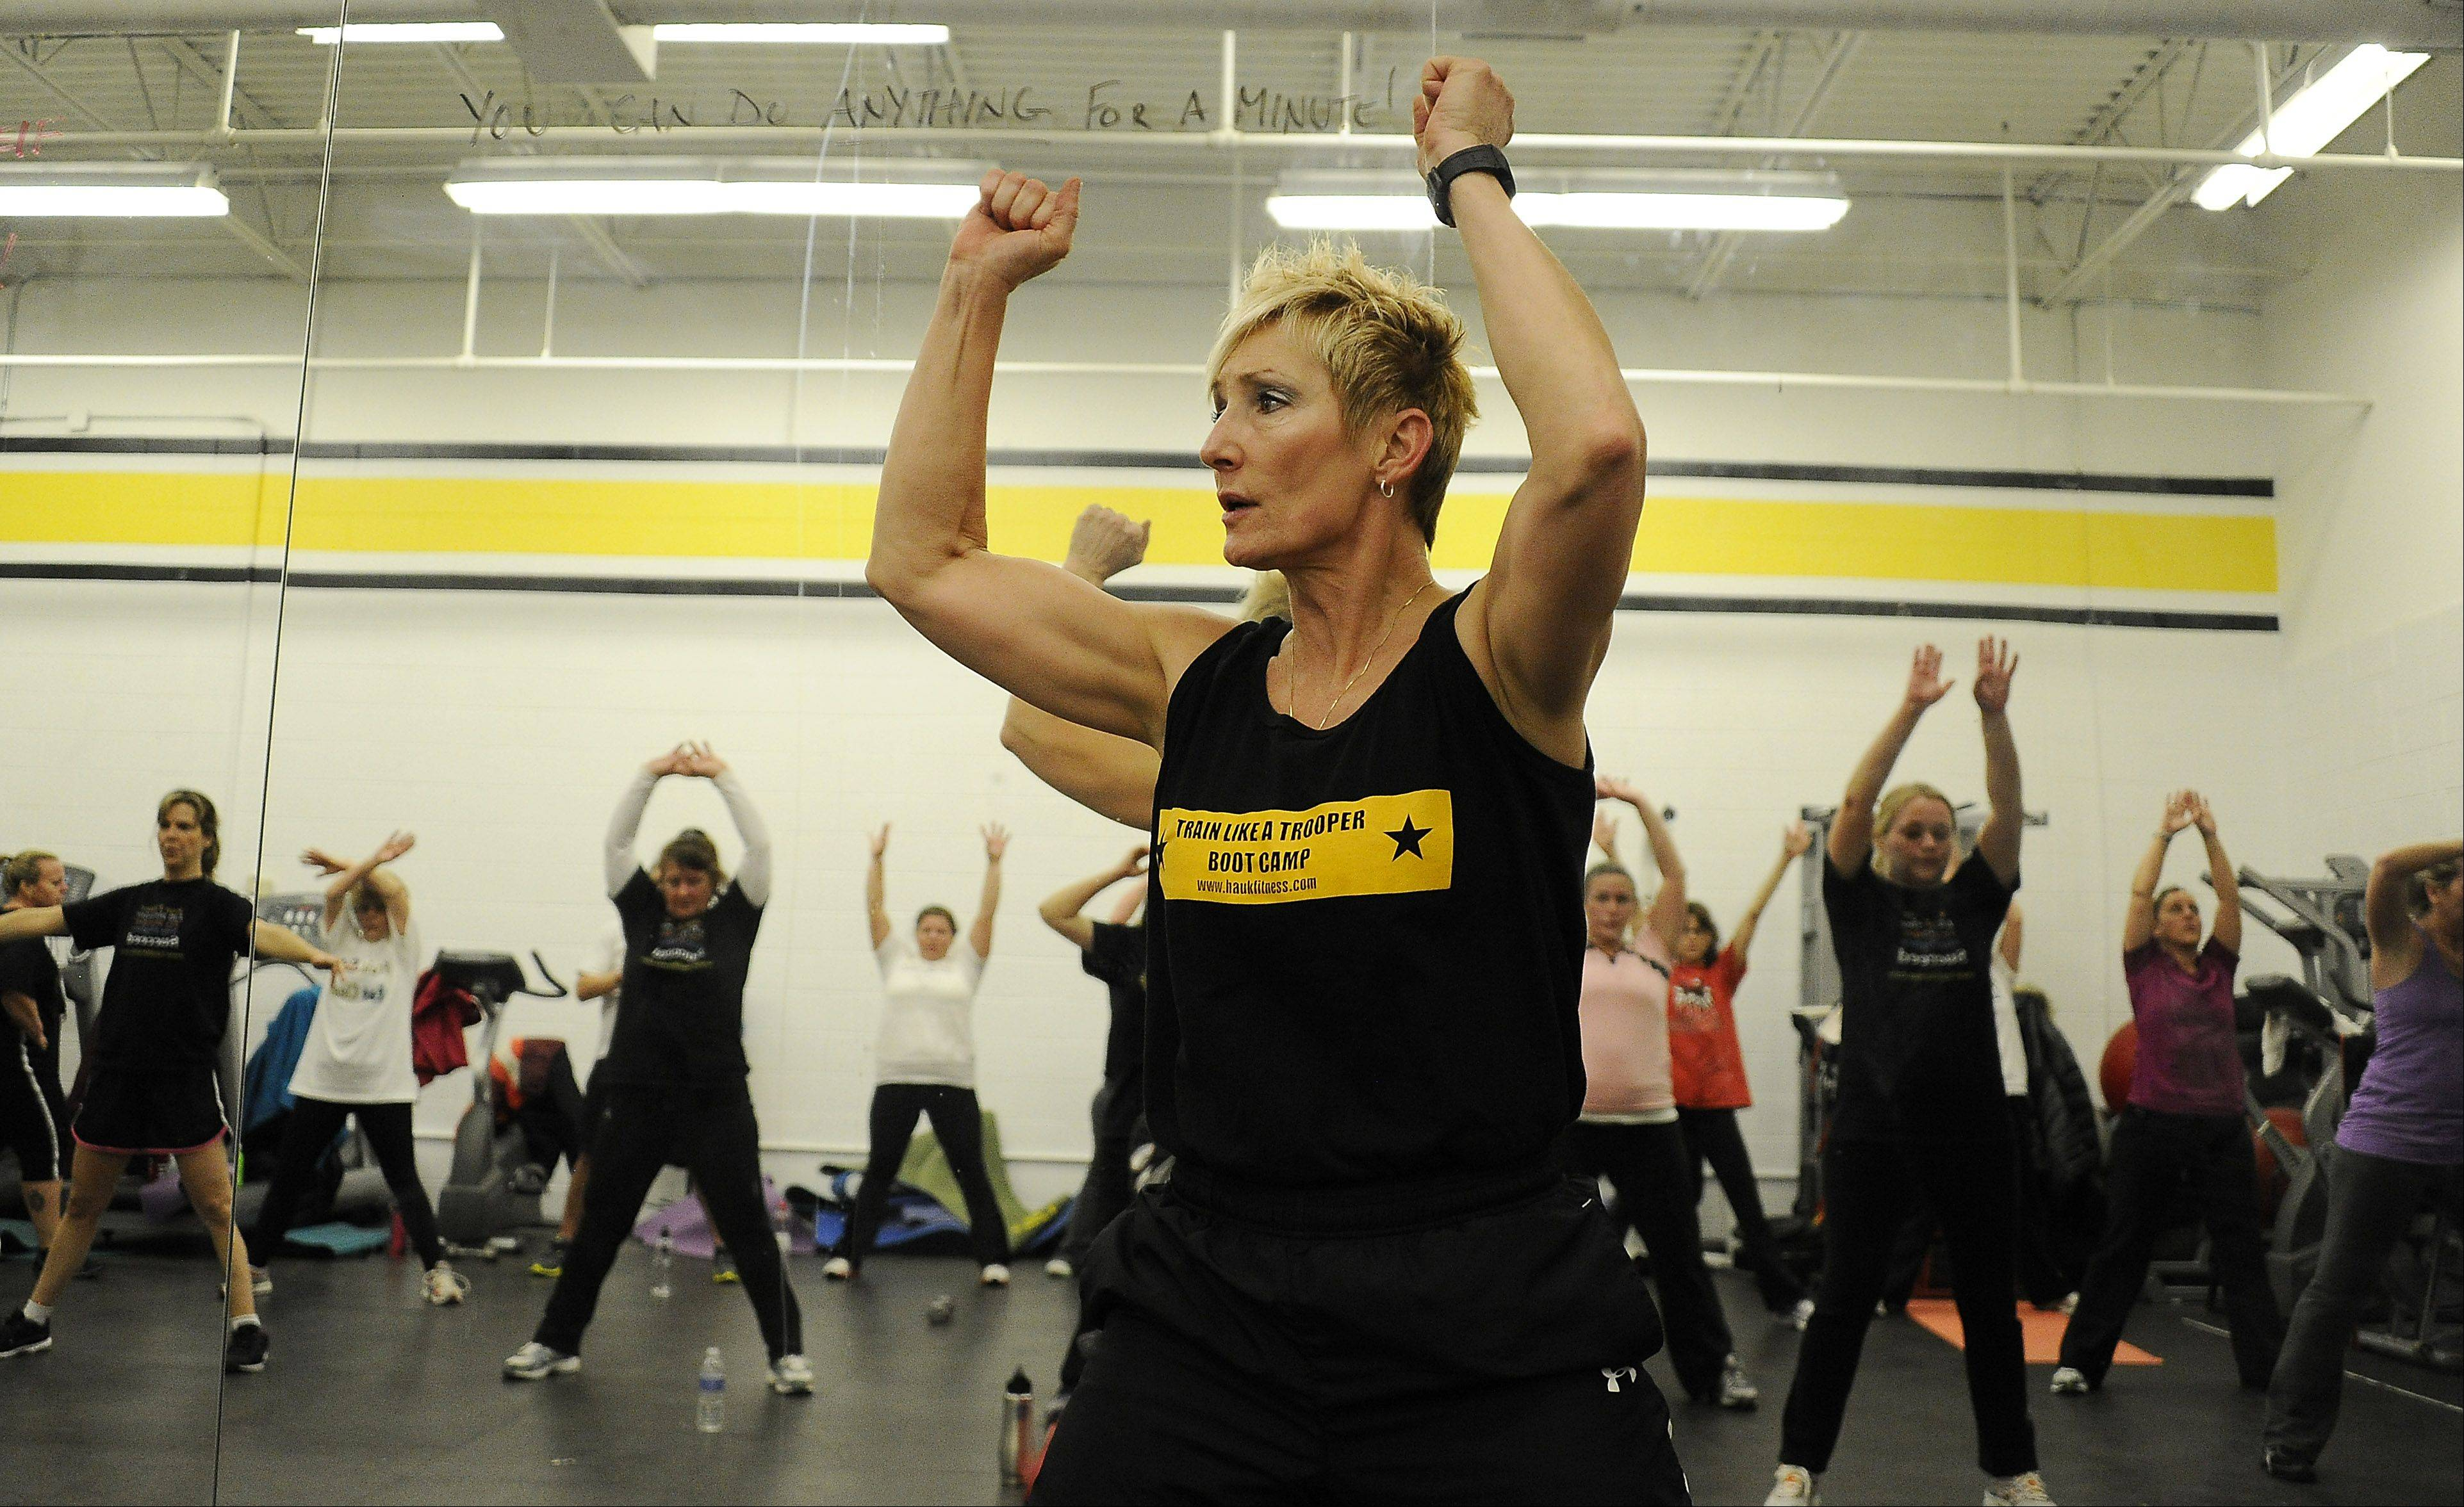 Retired Illinois State Police captain Tami Haukedahl leads her Train Like a Trooper Boot Camp class of suburban moms and dads though their paces.